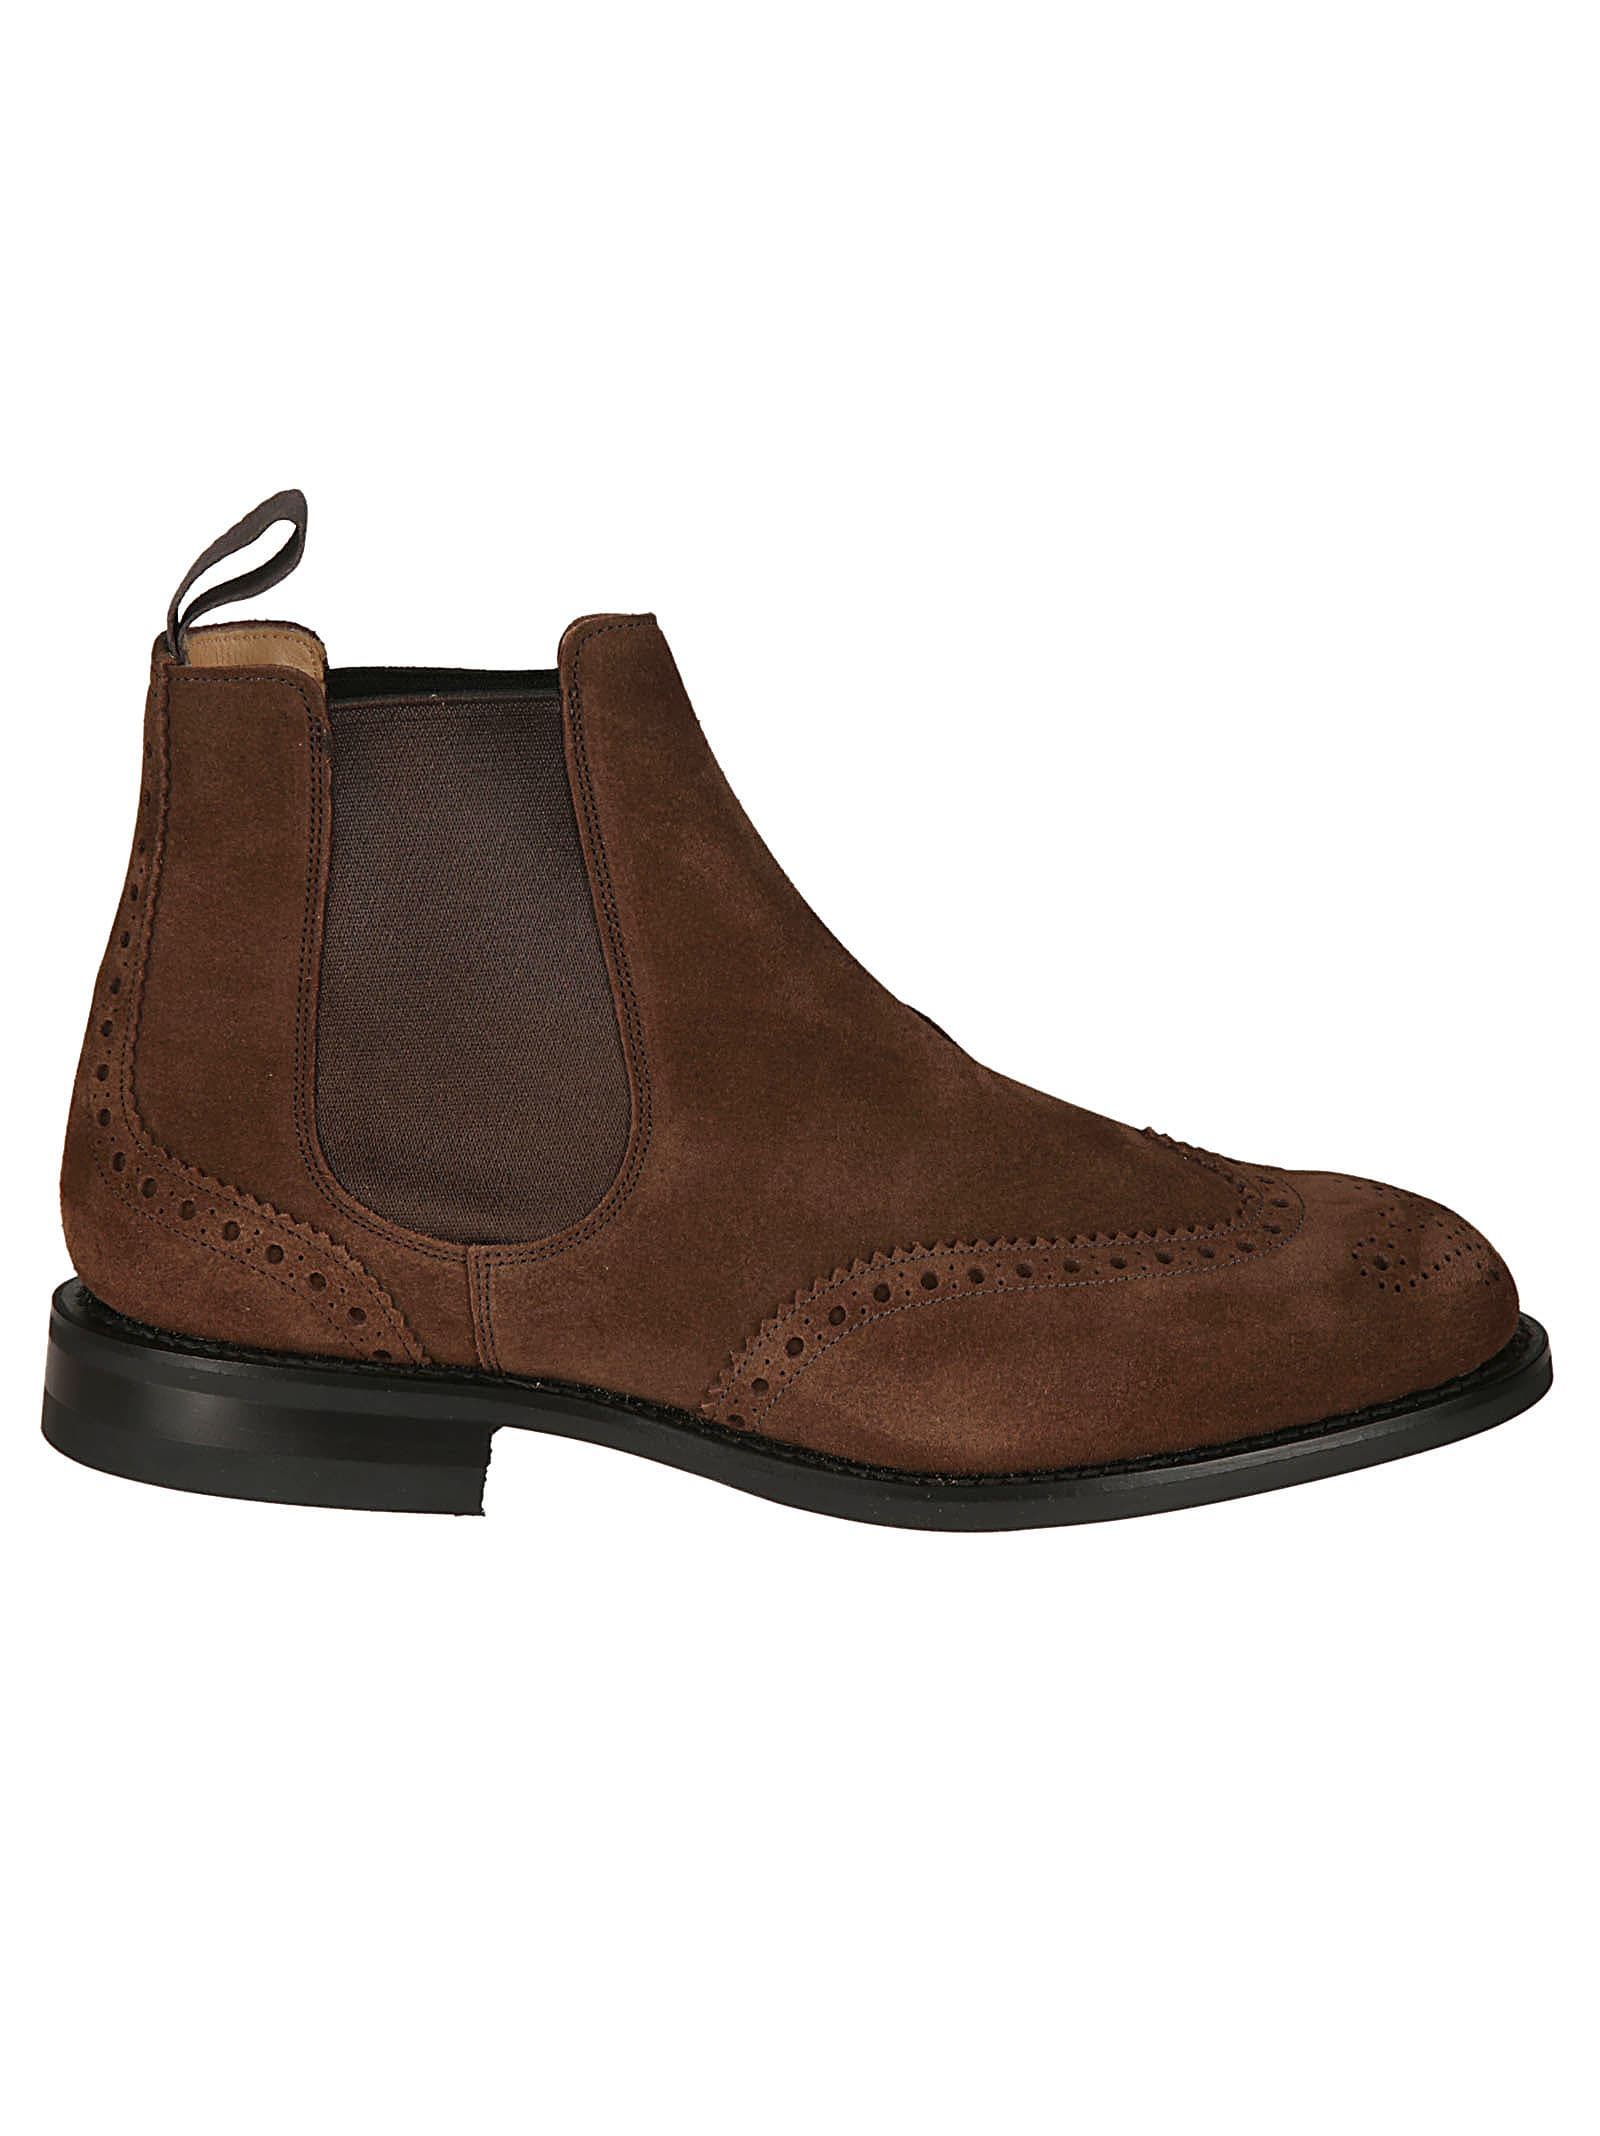 Churchs Ravenfield Ankle Boots